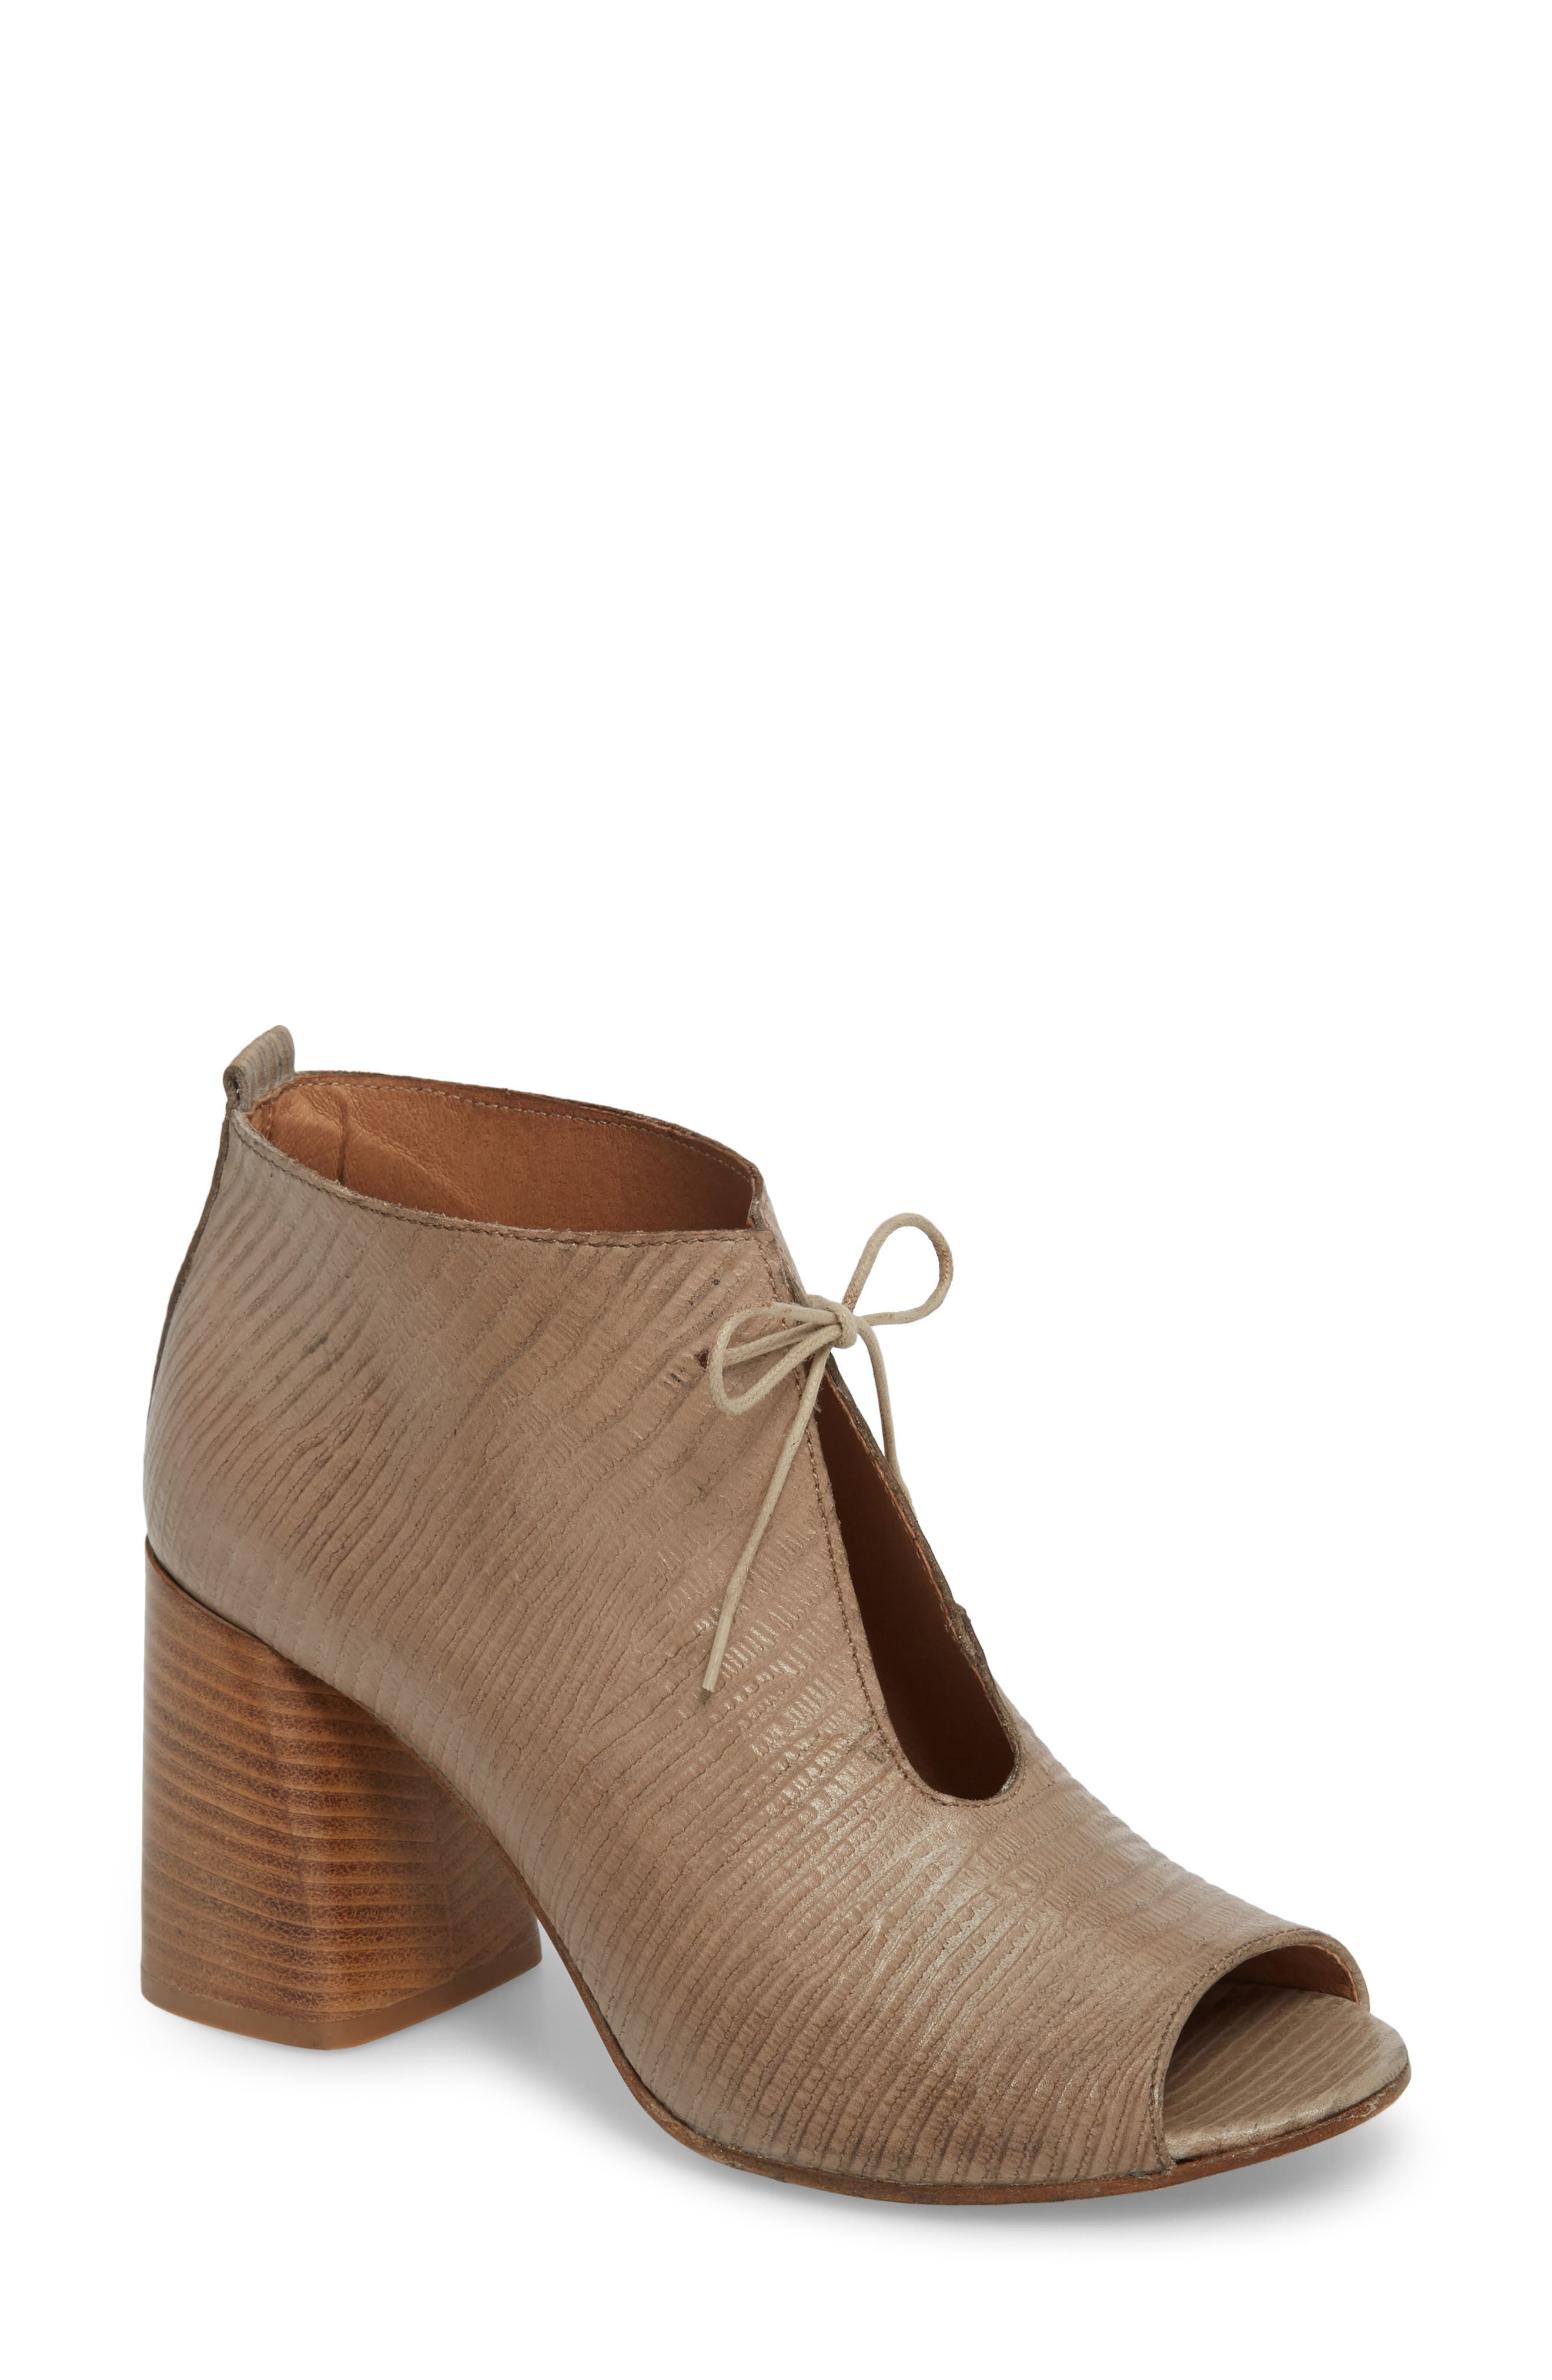 Lacey1 Bootie,                             Main thumbnail 1, color,                             TAUPE LEATHER